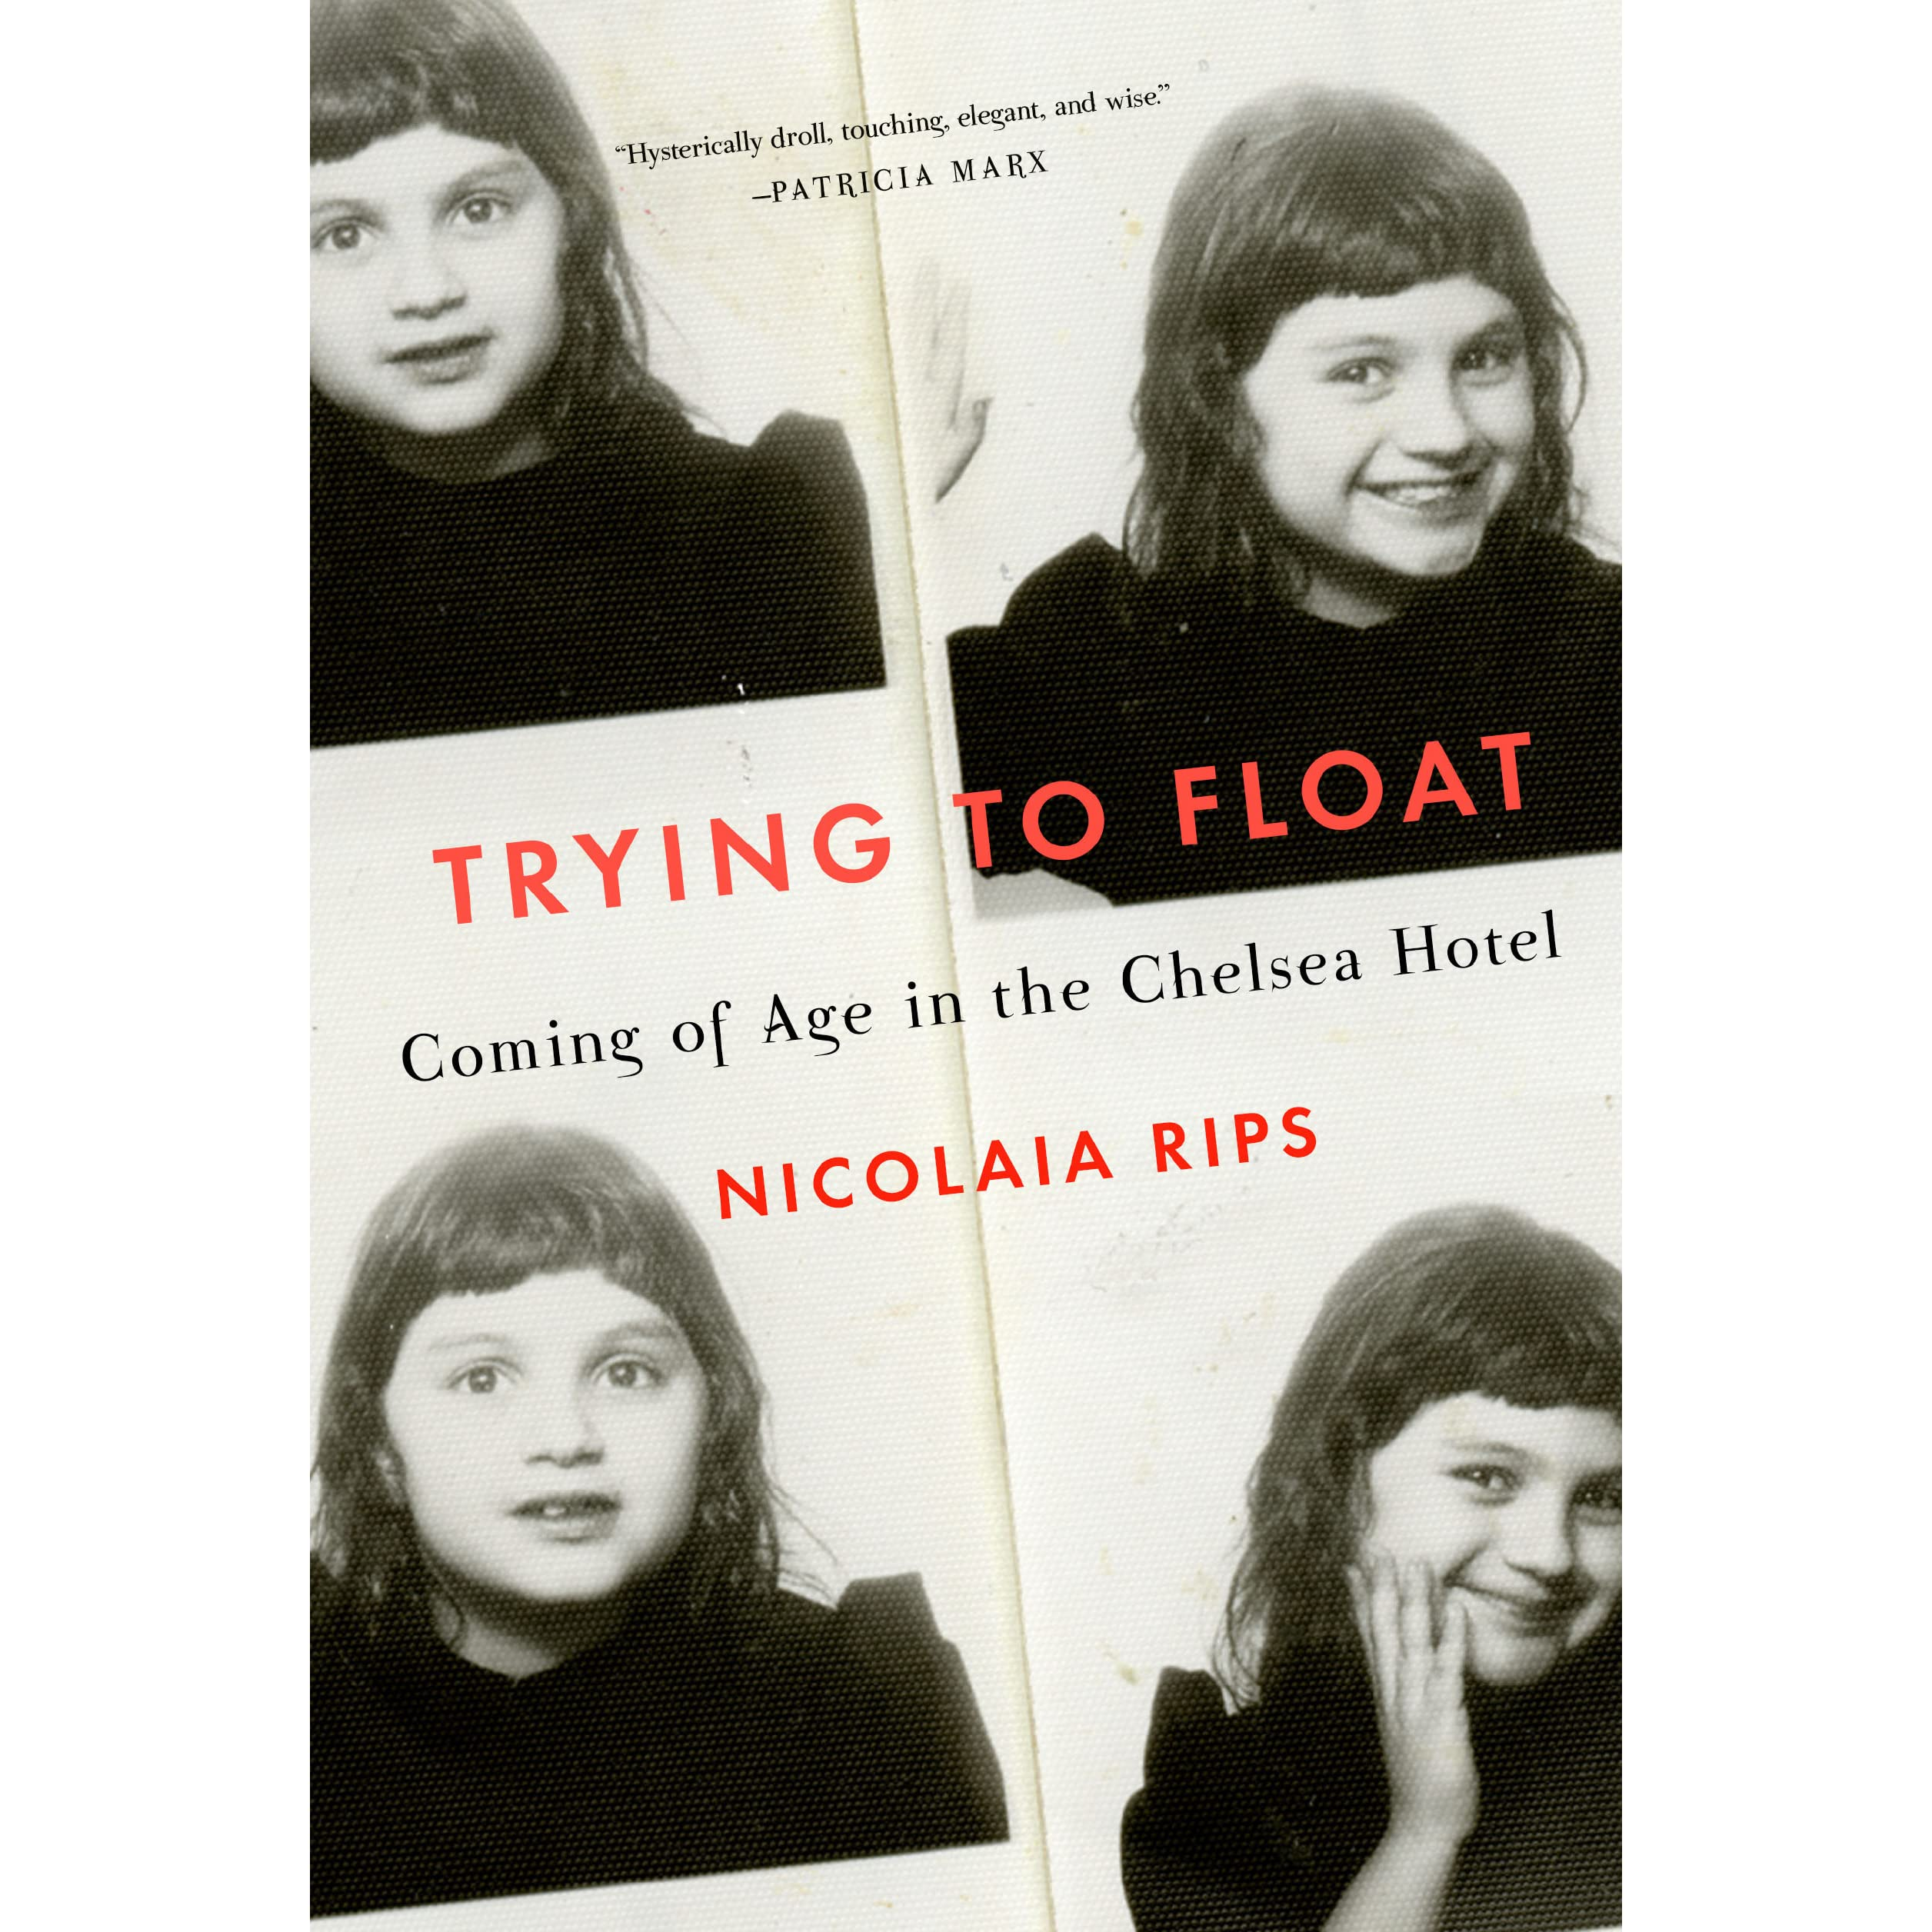 Trying to Float: Coming of Age in the Chelsea Hotel by Nicolaia Rips